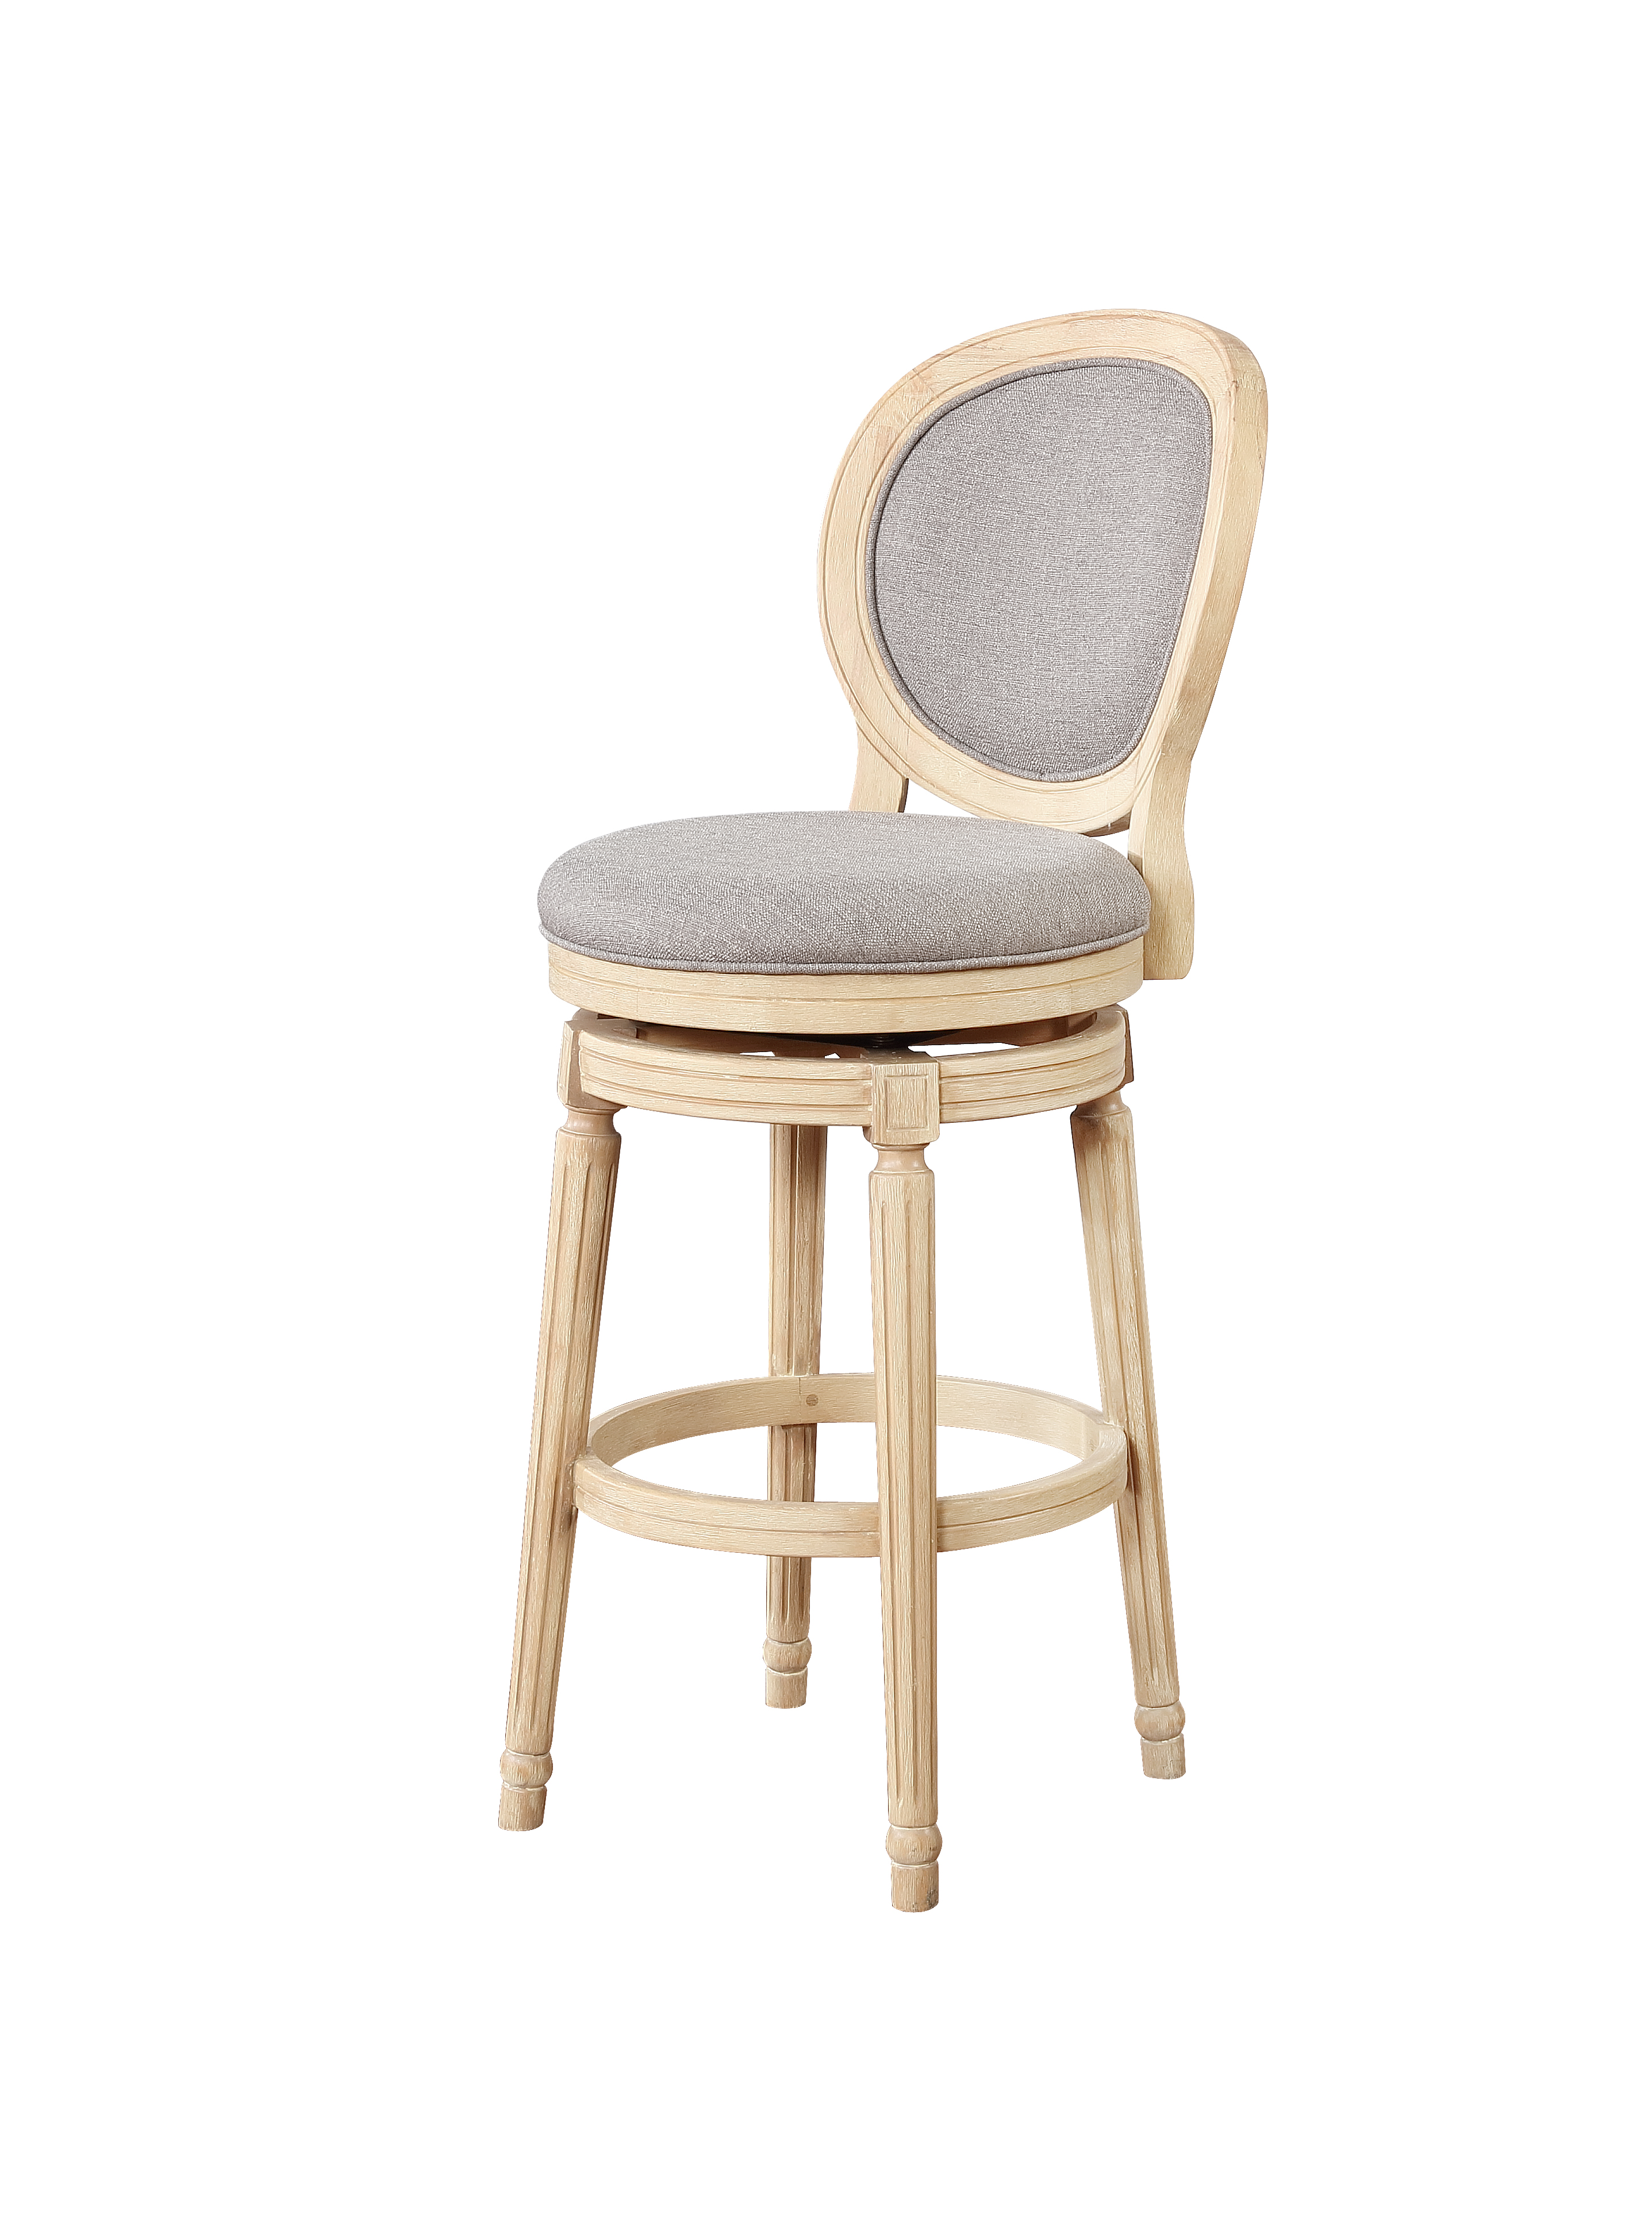 Pleasant Linon Wood And Foam And Fabric Bar Stool In White Wash Finish Bs024Ash01U Ncnpc Chair Design For Home Ncnpcorg